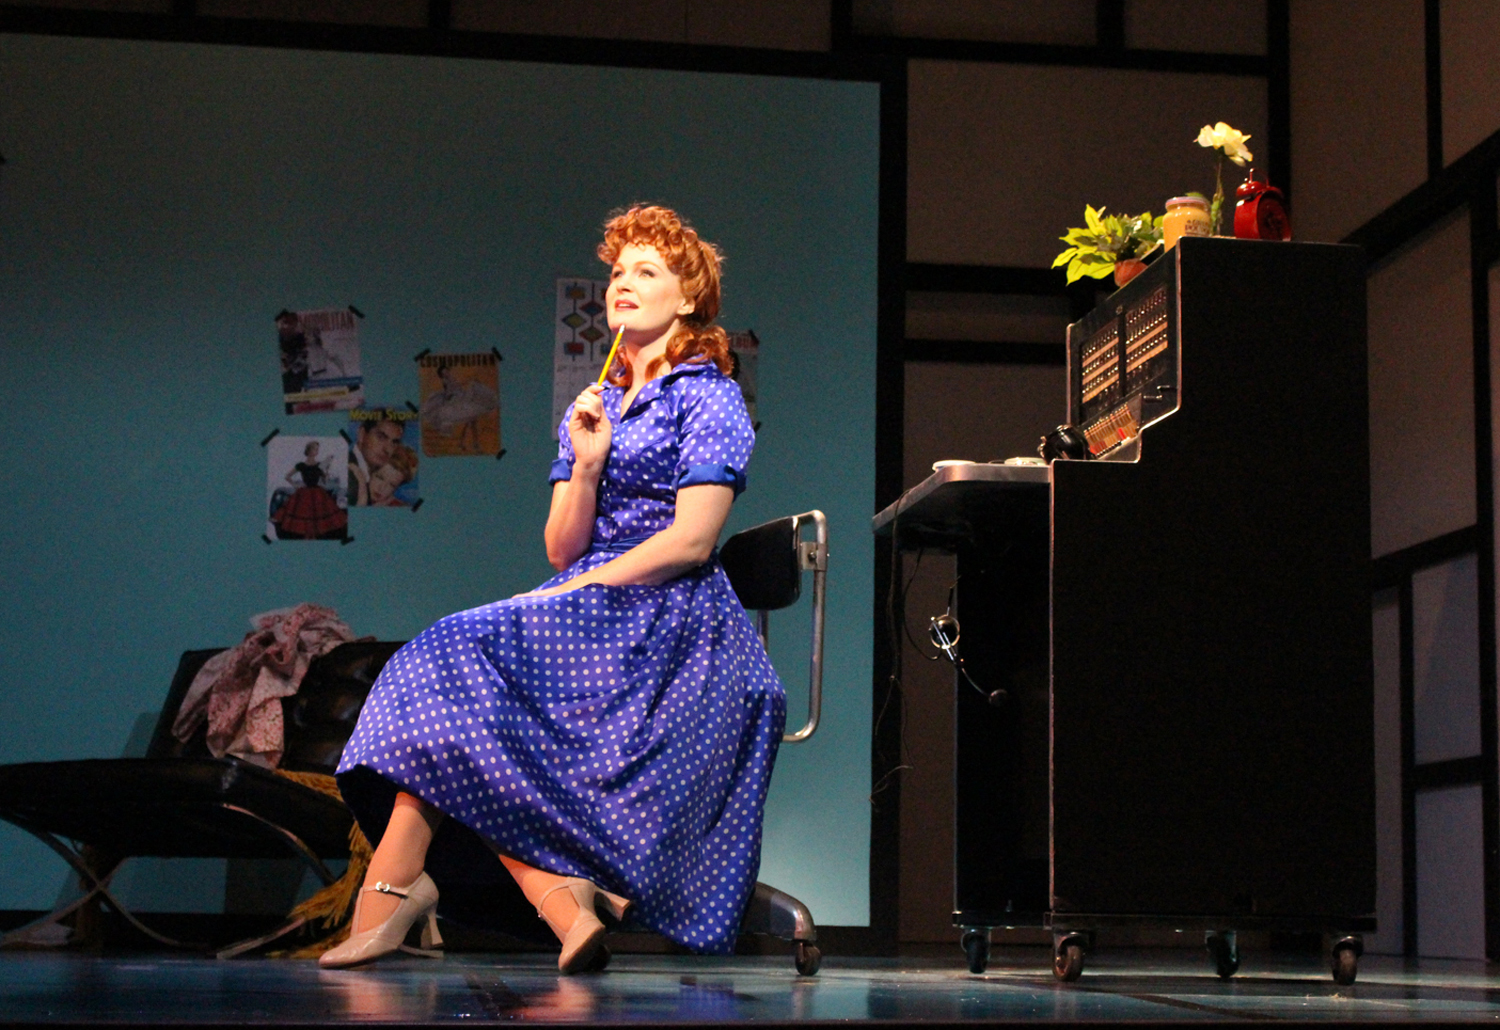 KATE BALDWIN AS ELLA PETERSON AT THE SWITCHBOARD